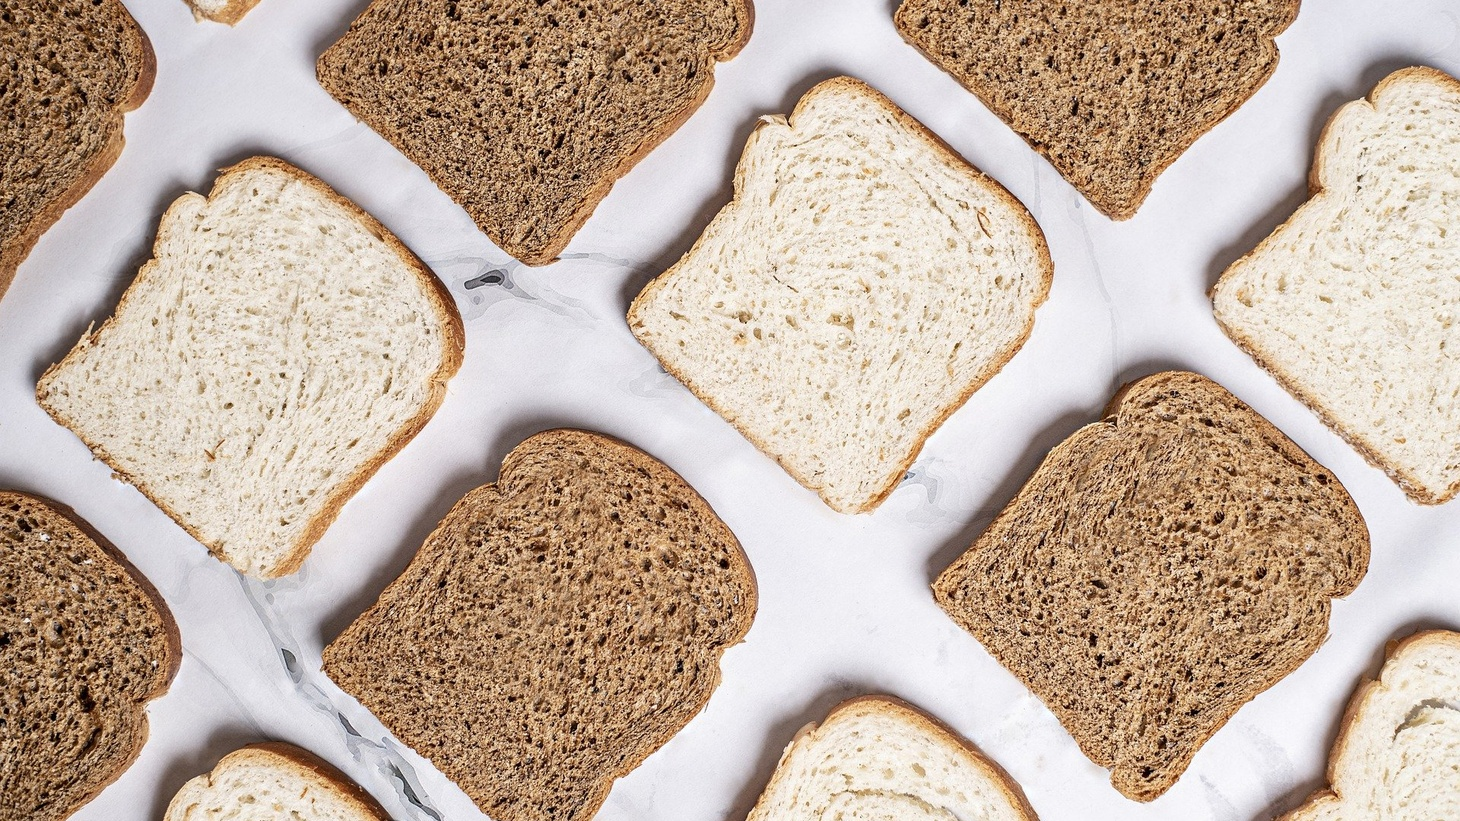 Bread was one of the last of the important staple foods in the American diet to become industrialized, according to Professor Aaron Bobrow-Strain.